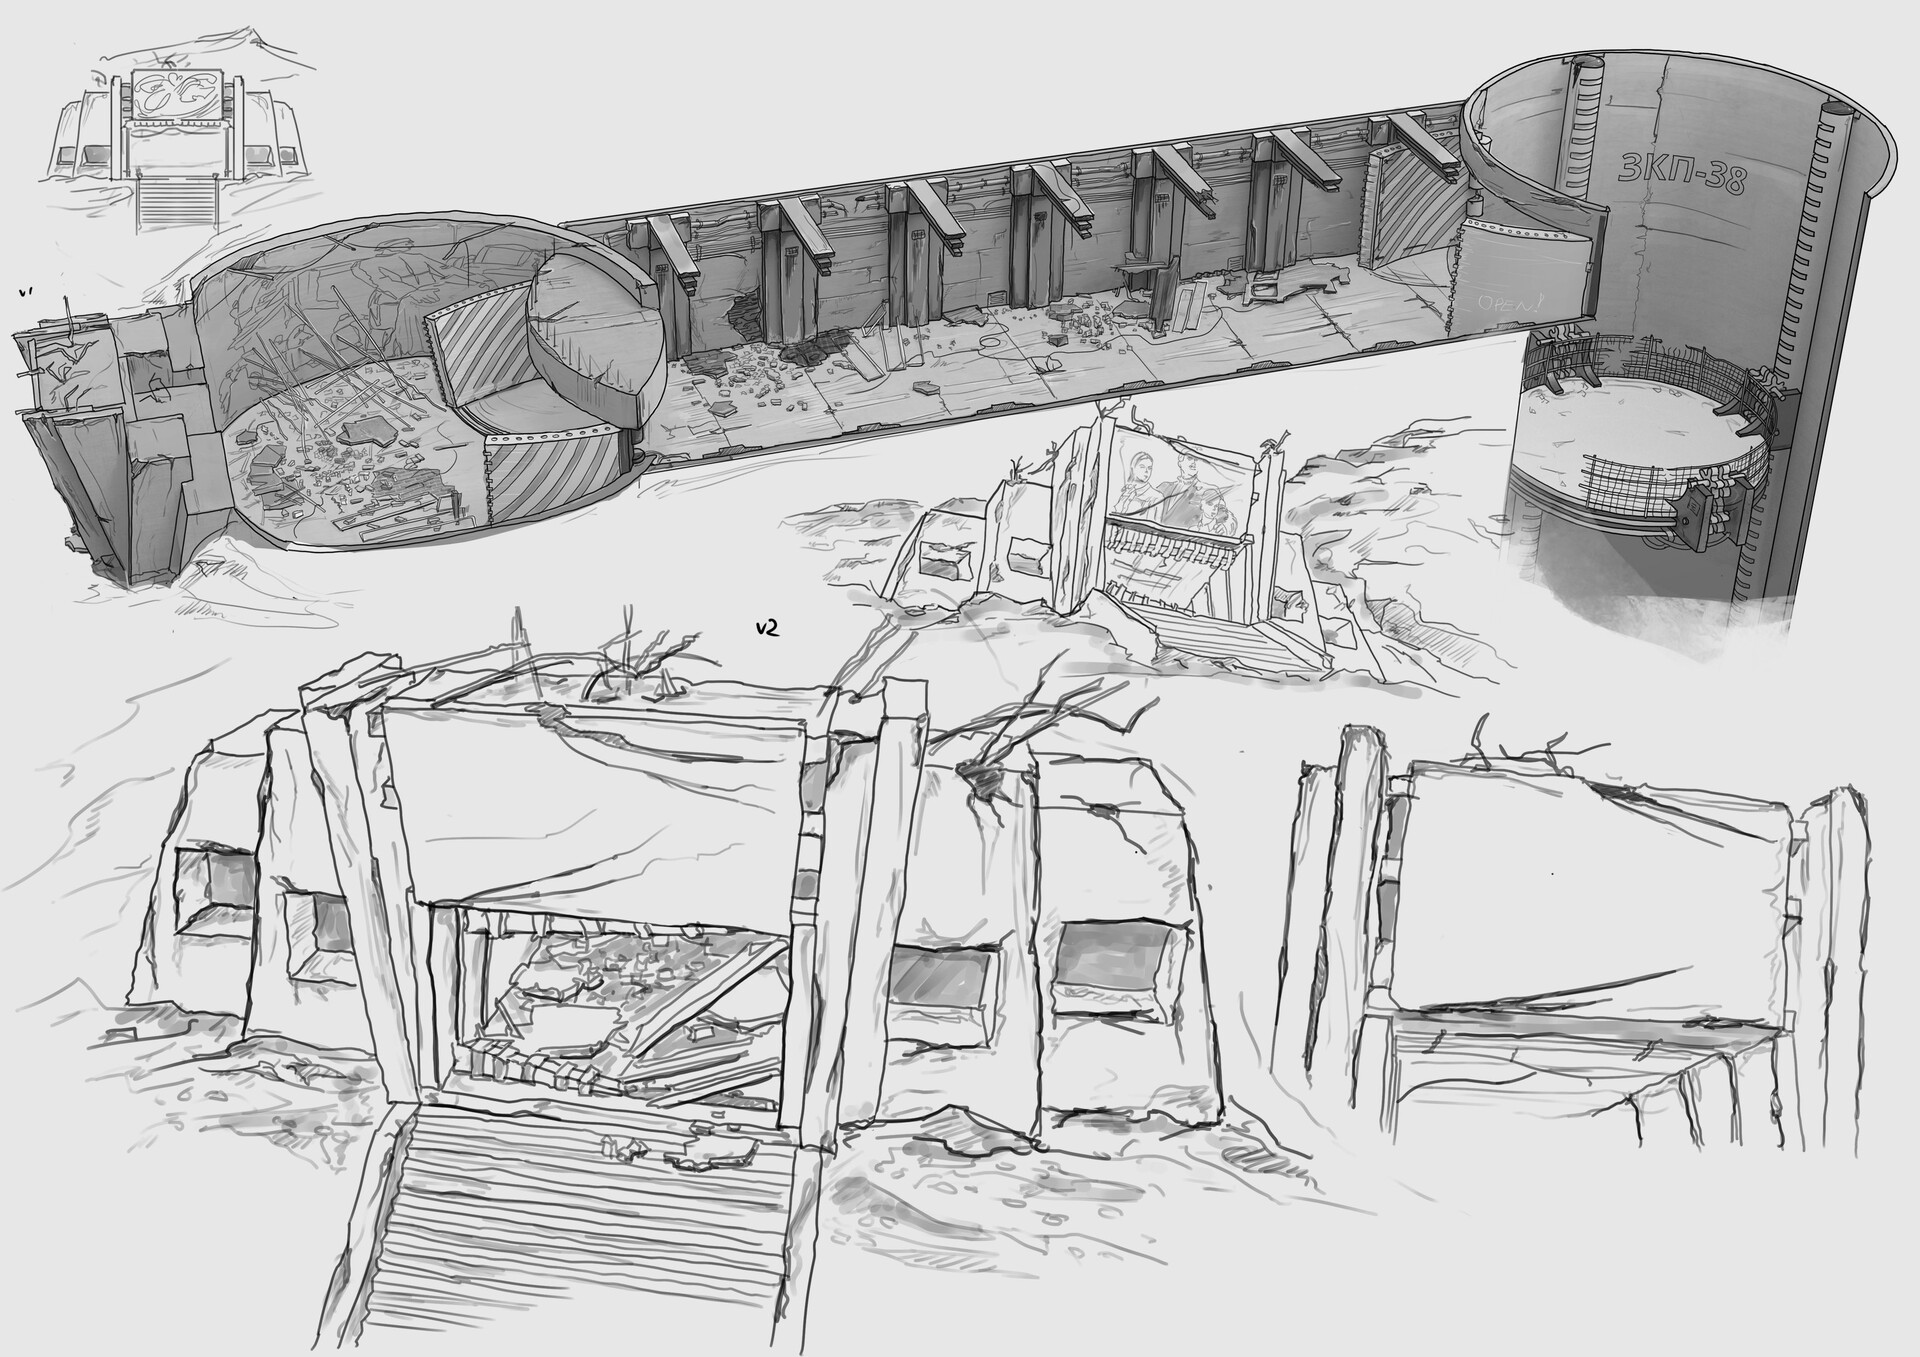 Sketches + Other variations + Inside view